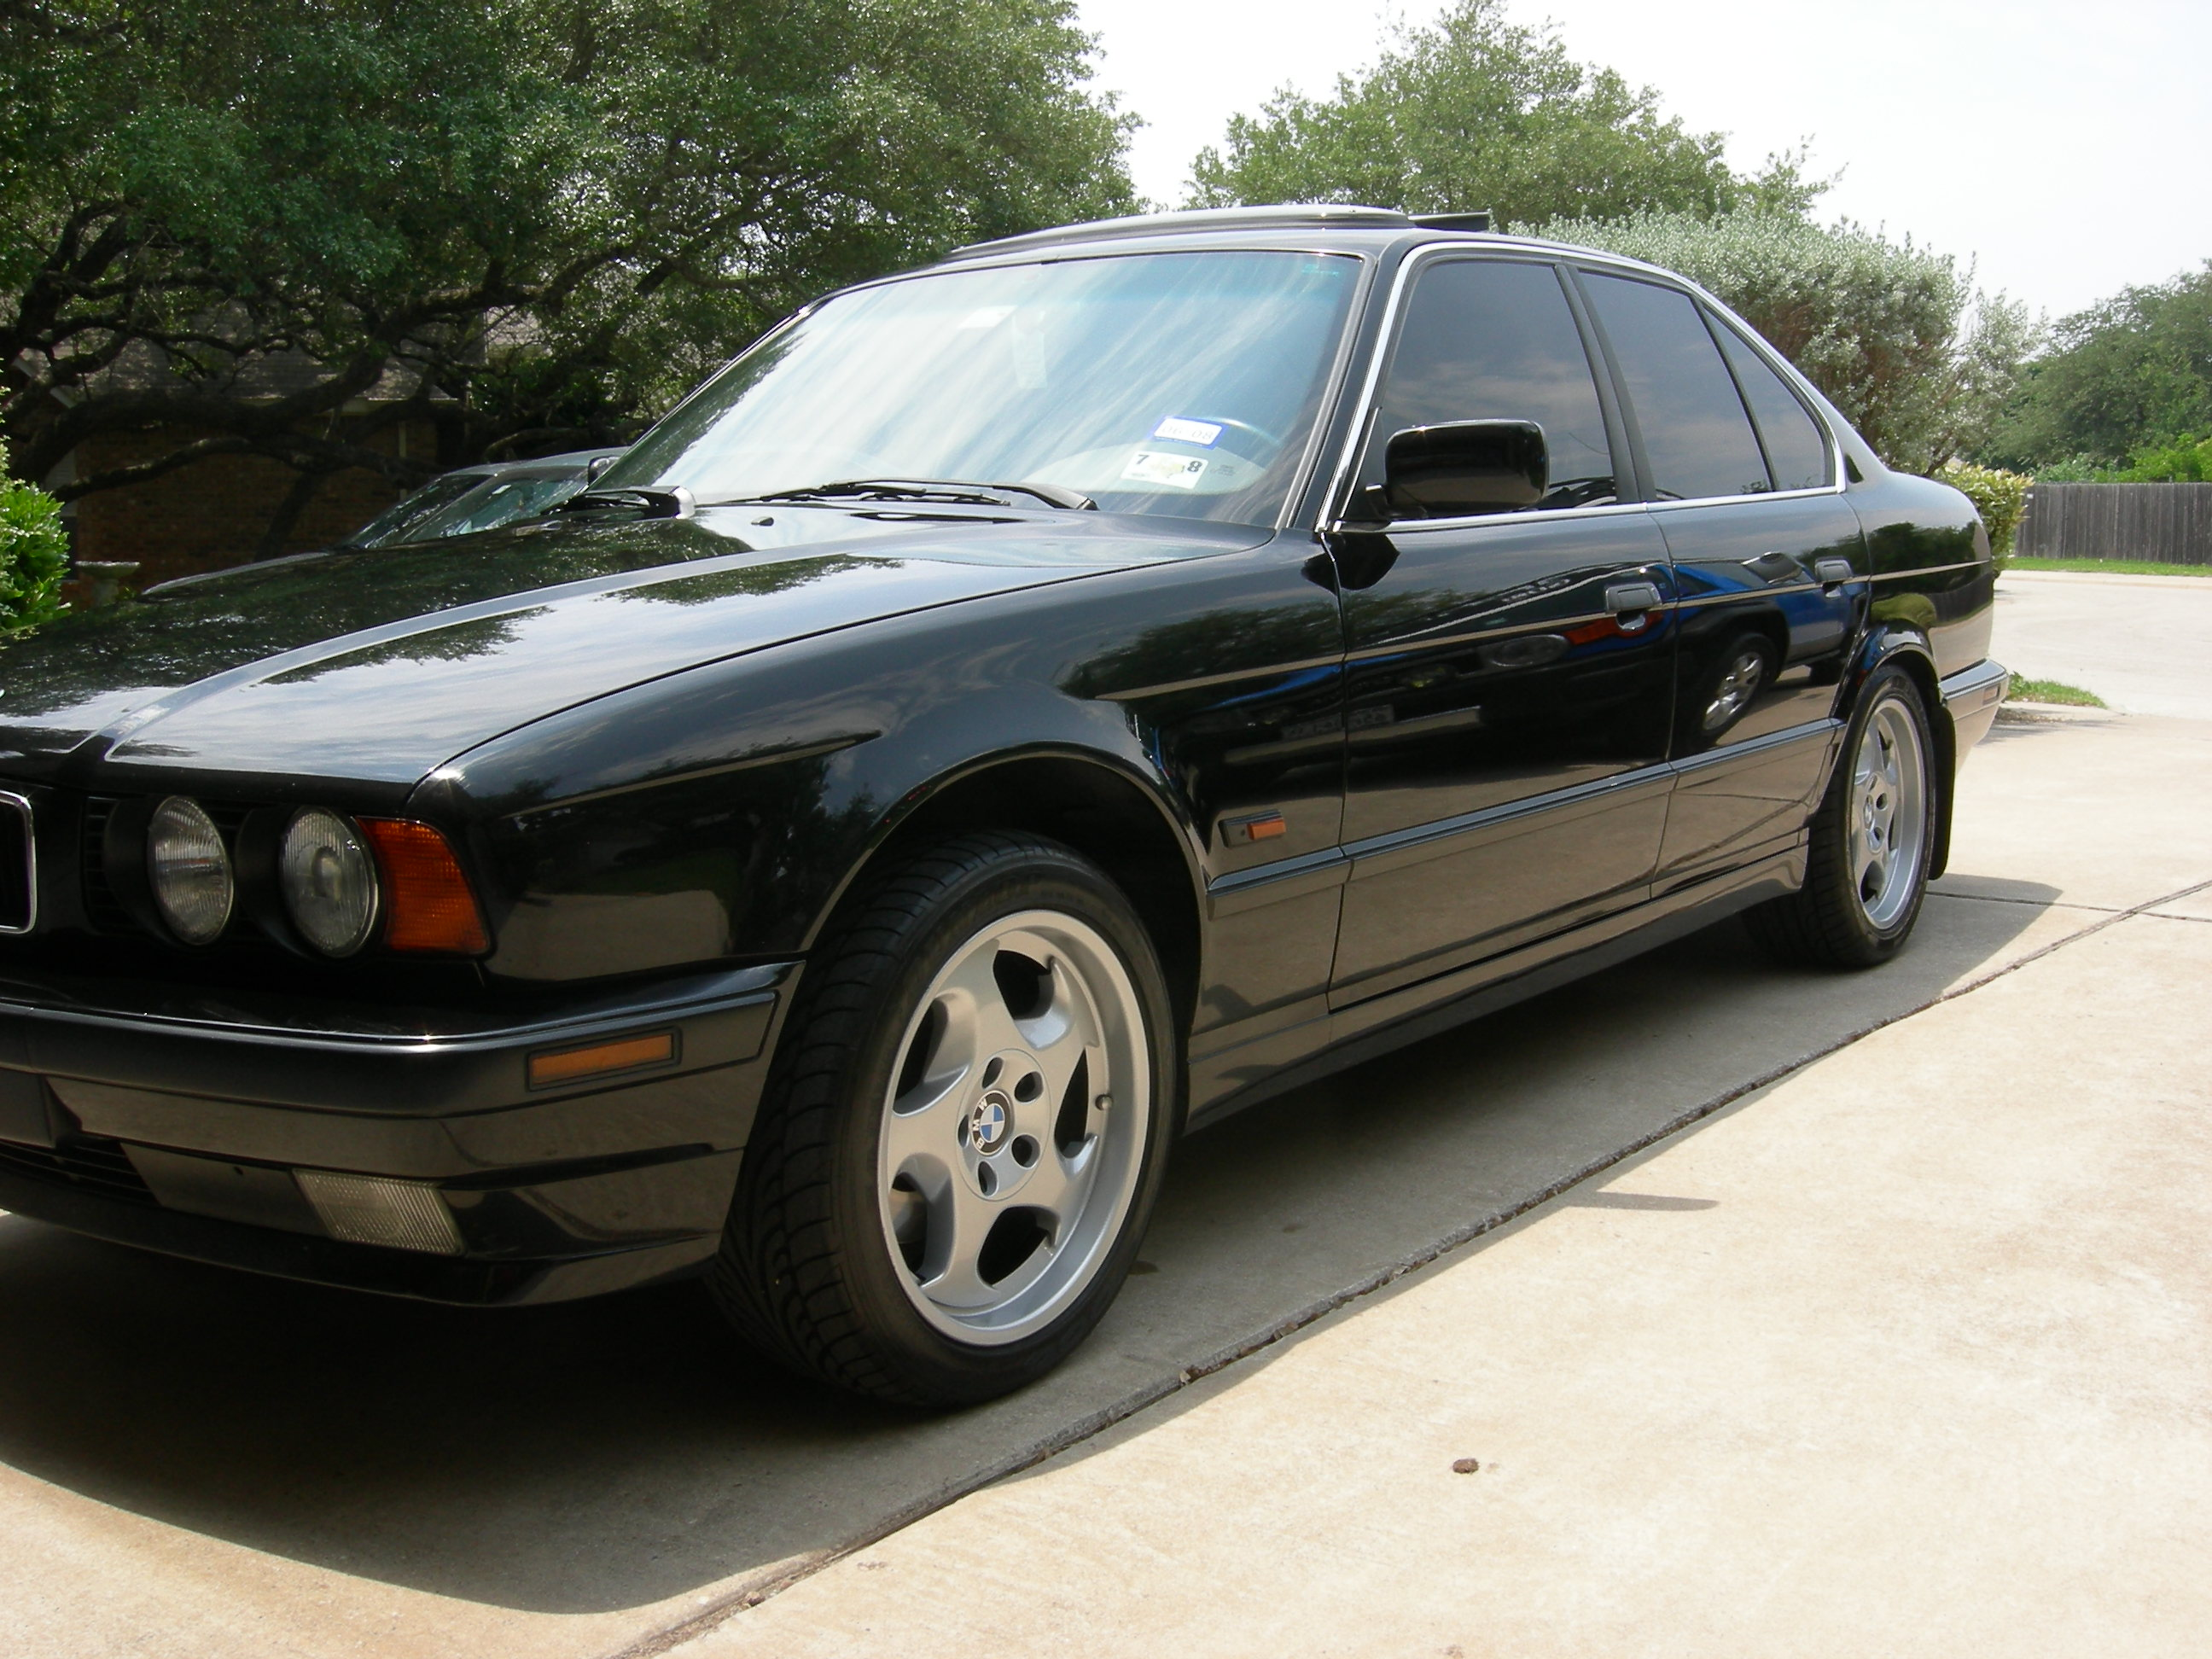 1995 5er finally gets wheels-bmw95-002.jpg